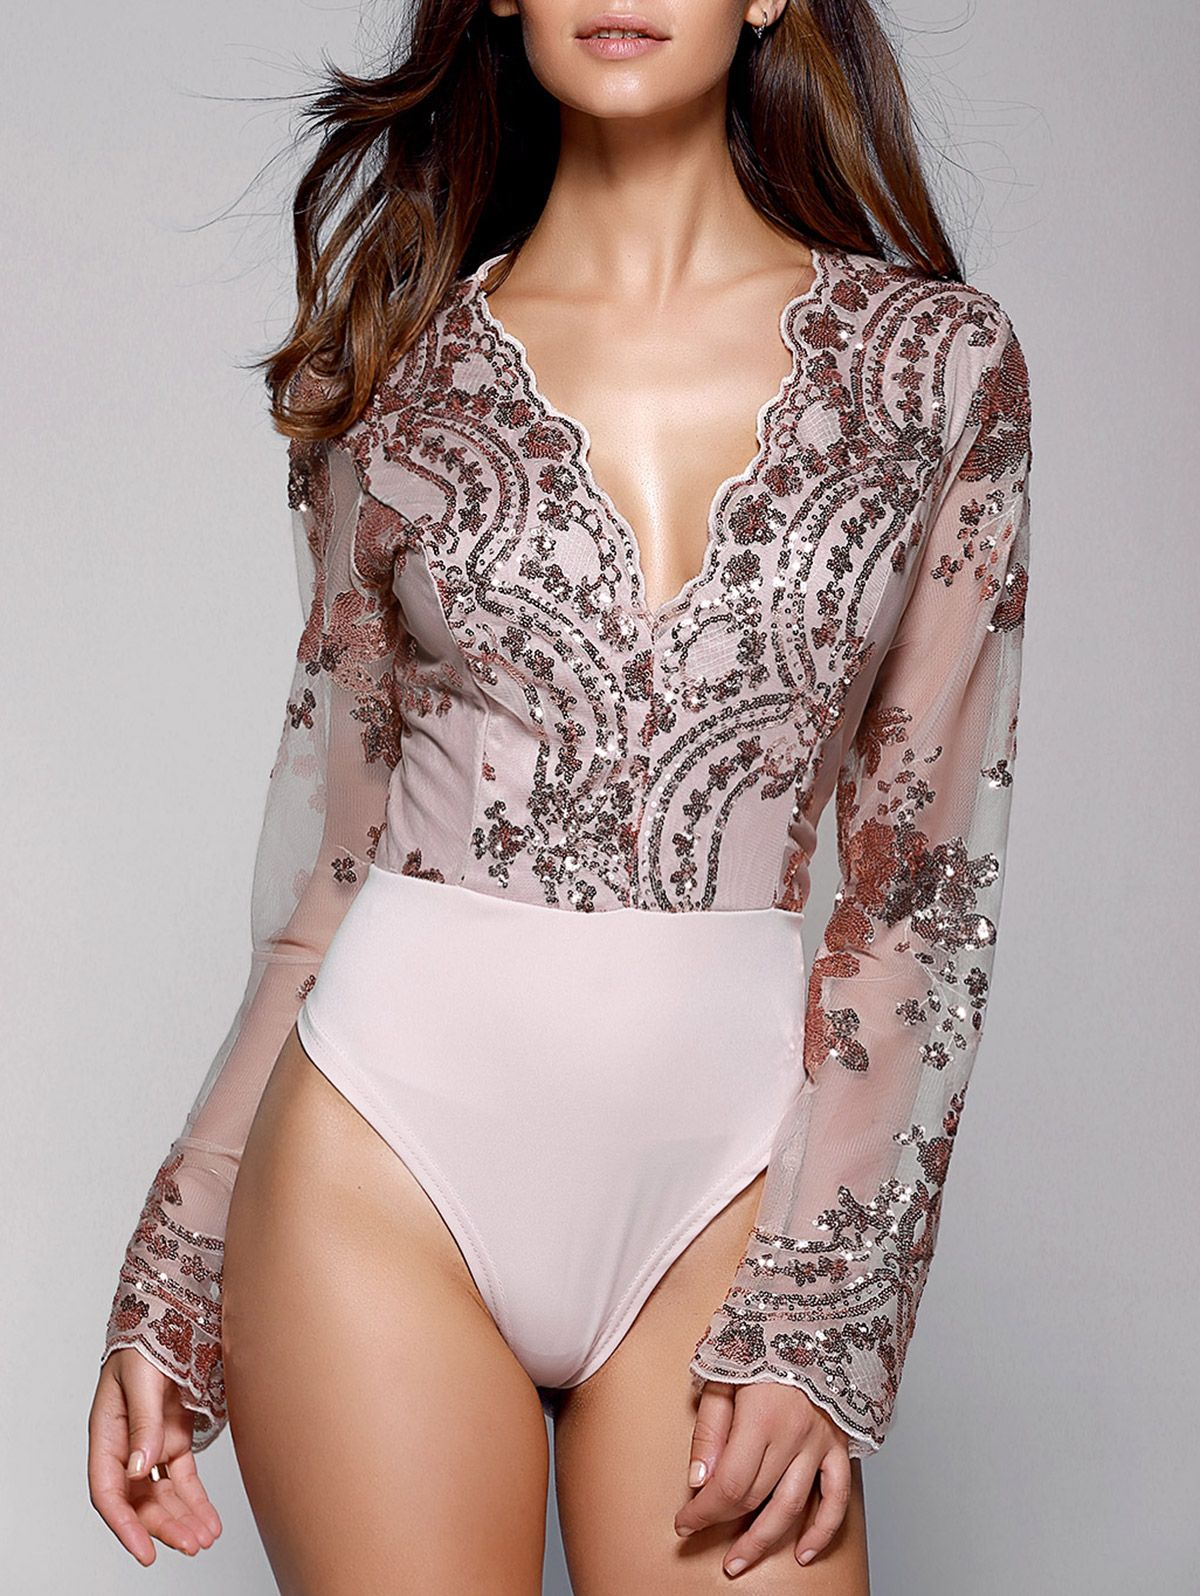 bfc5a6484d Stylish Plunging Neck Long Sleeve Floral Sequined Women s Bodysuit ...